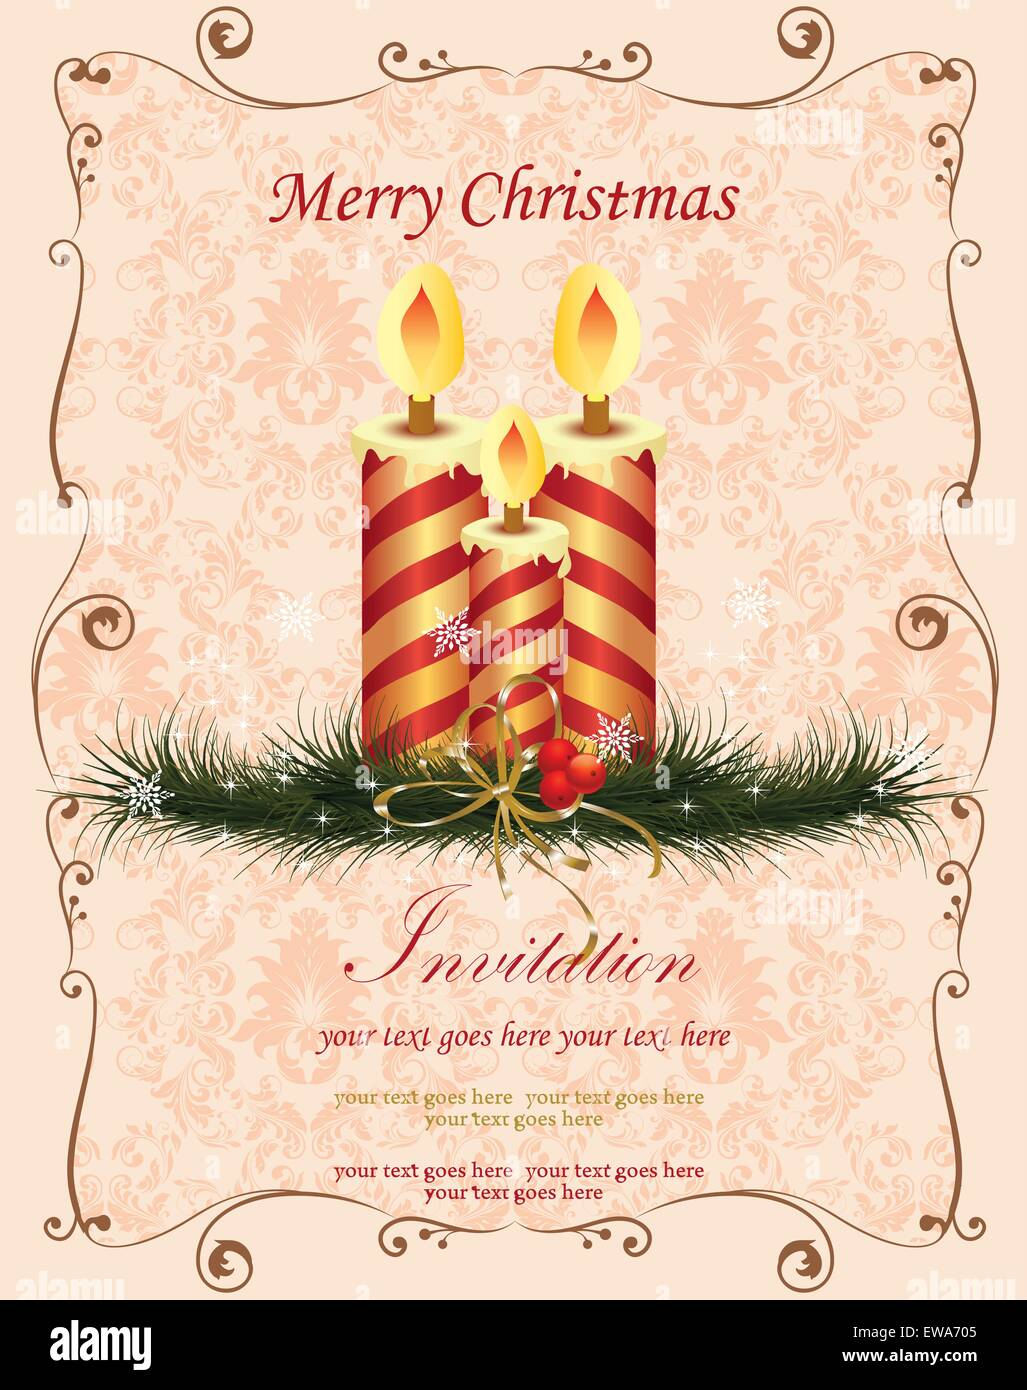 vintage christmas card with ornate elegant retro abstract floral design red and gold striped candles on light orange pink